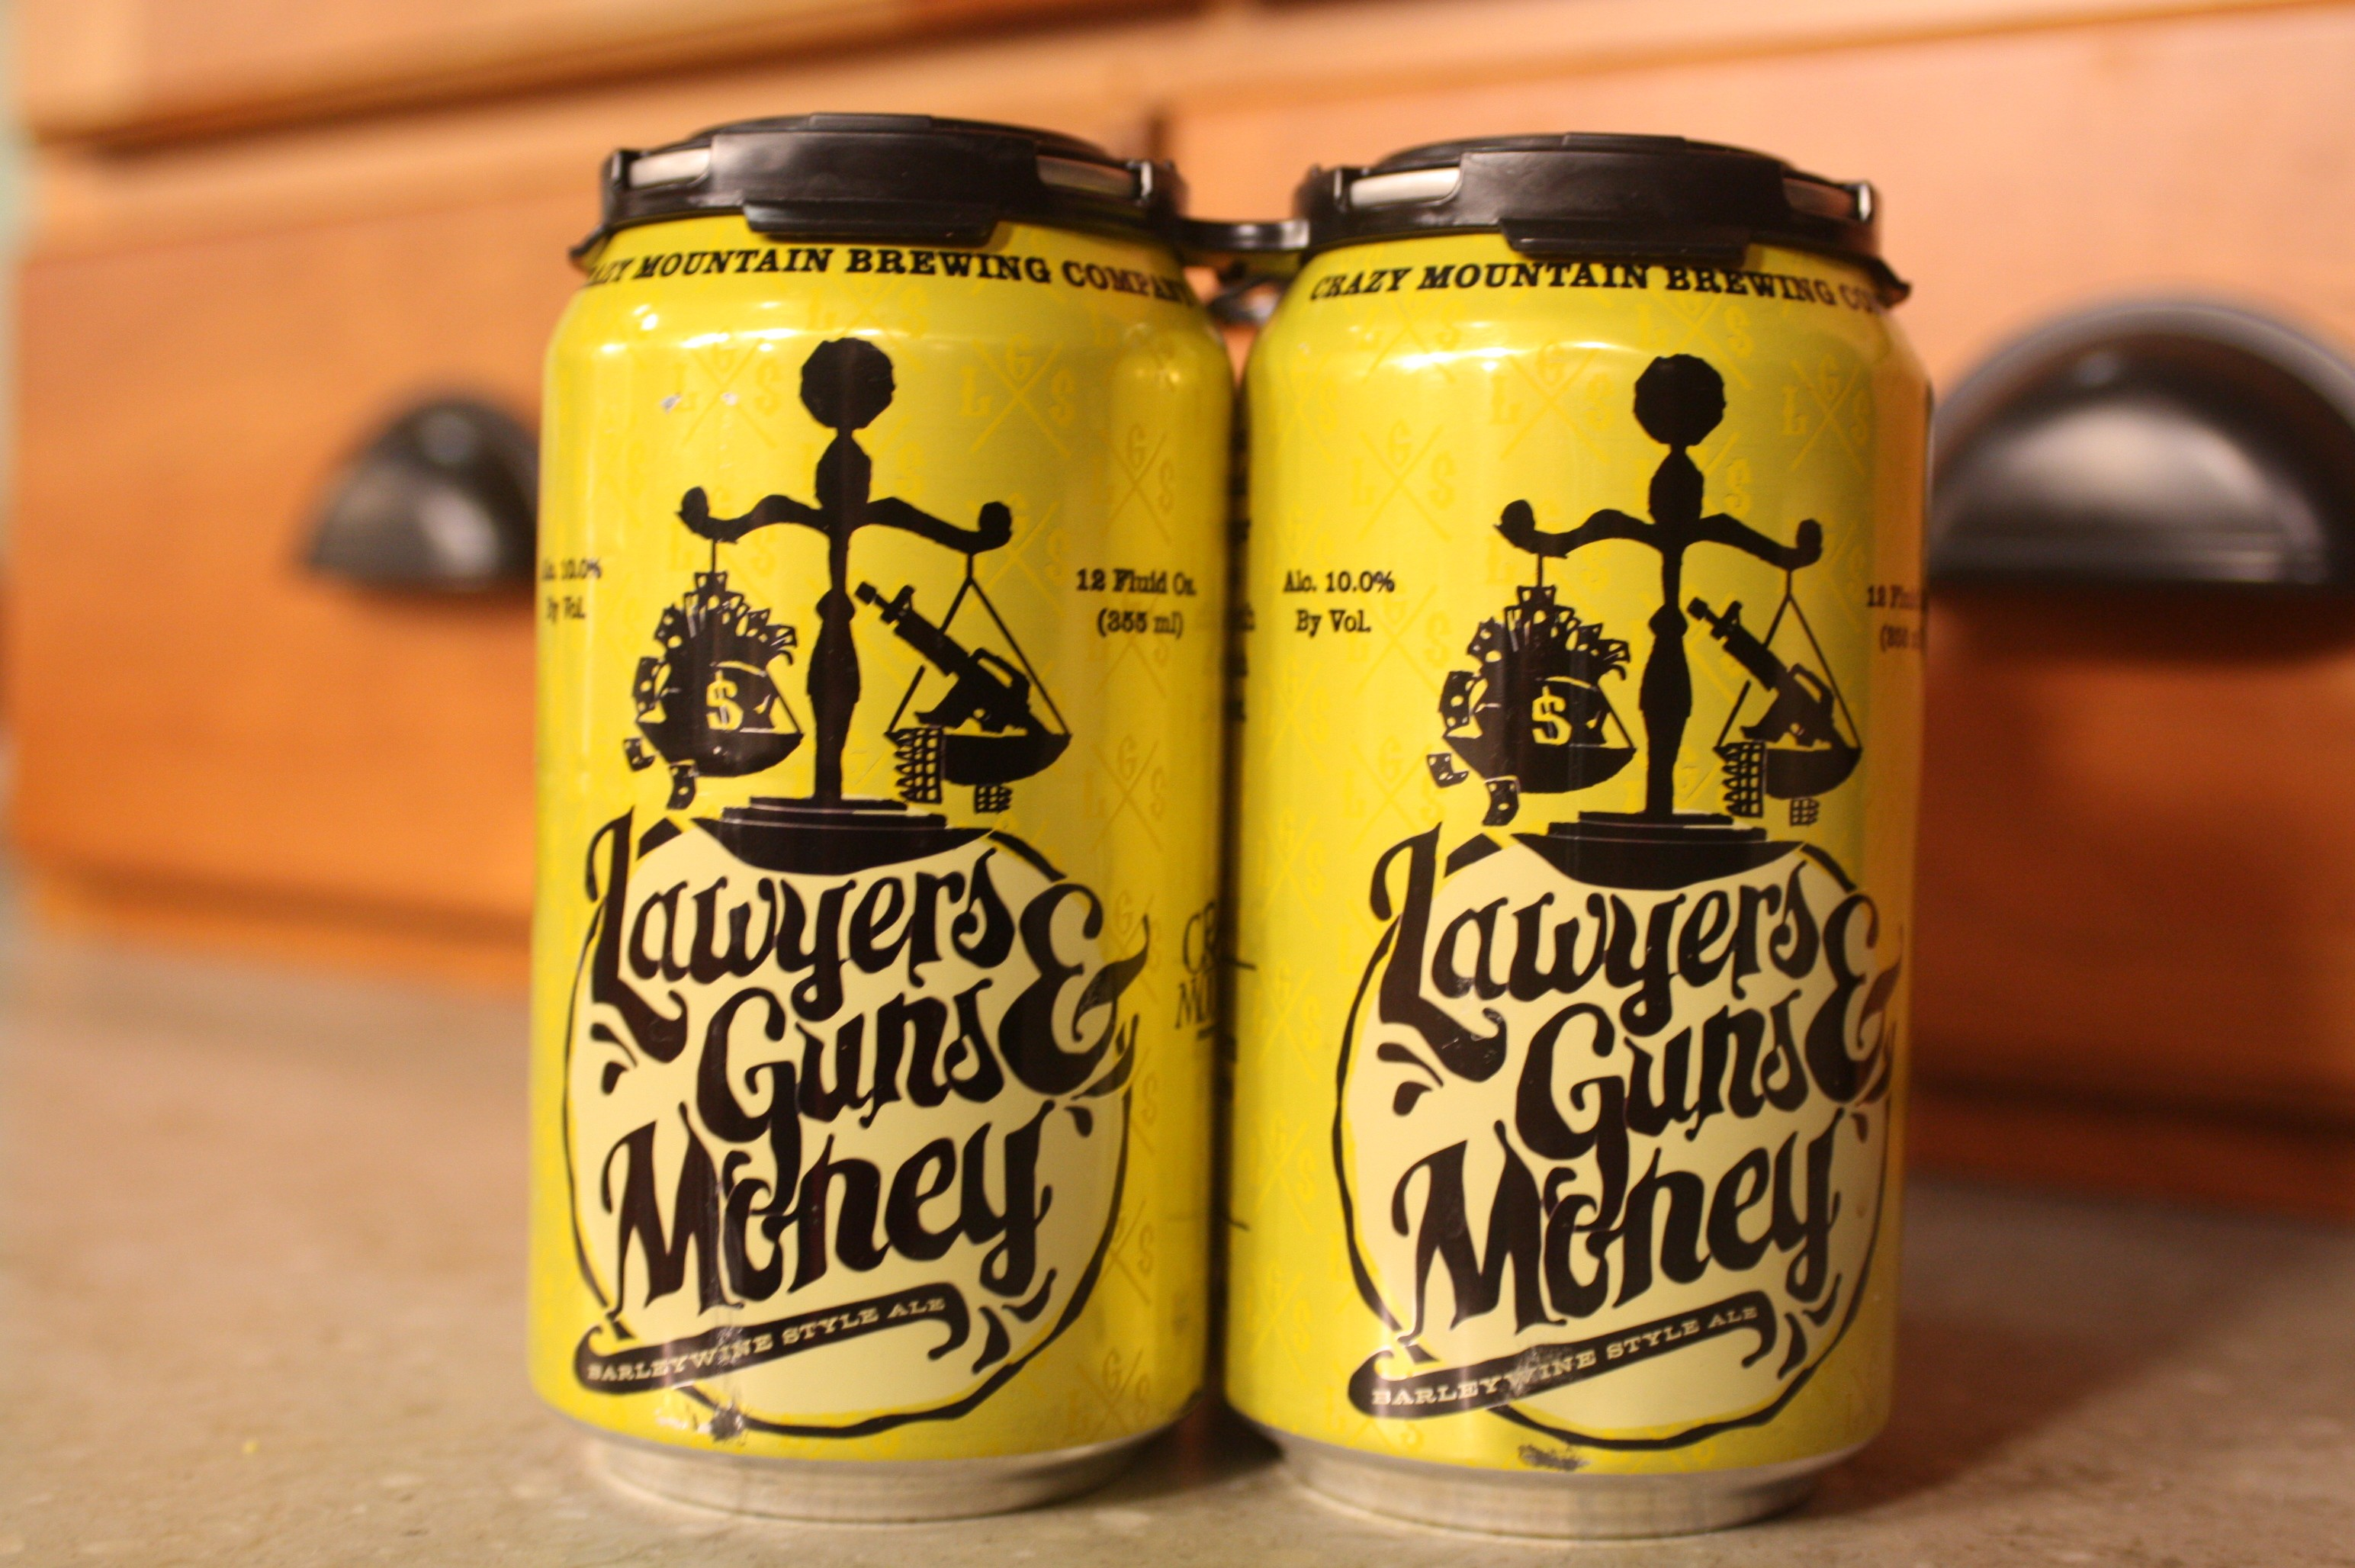 Cazy Mountain Brewing Lawyers Guns  Money